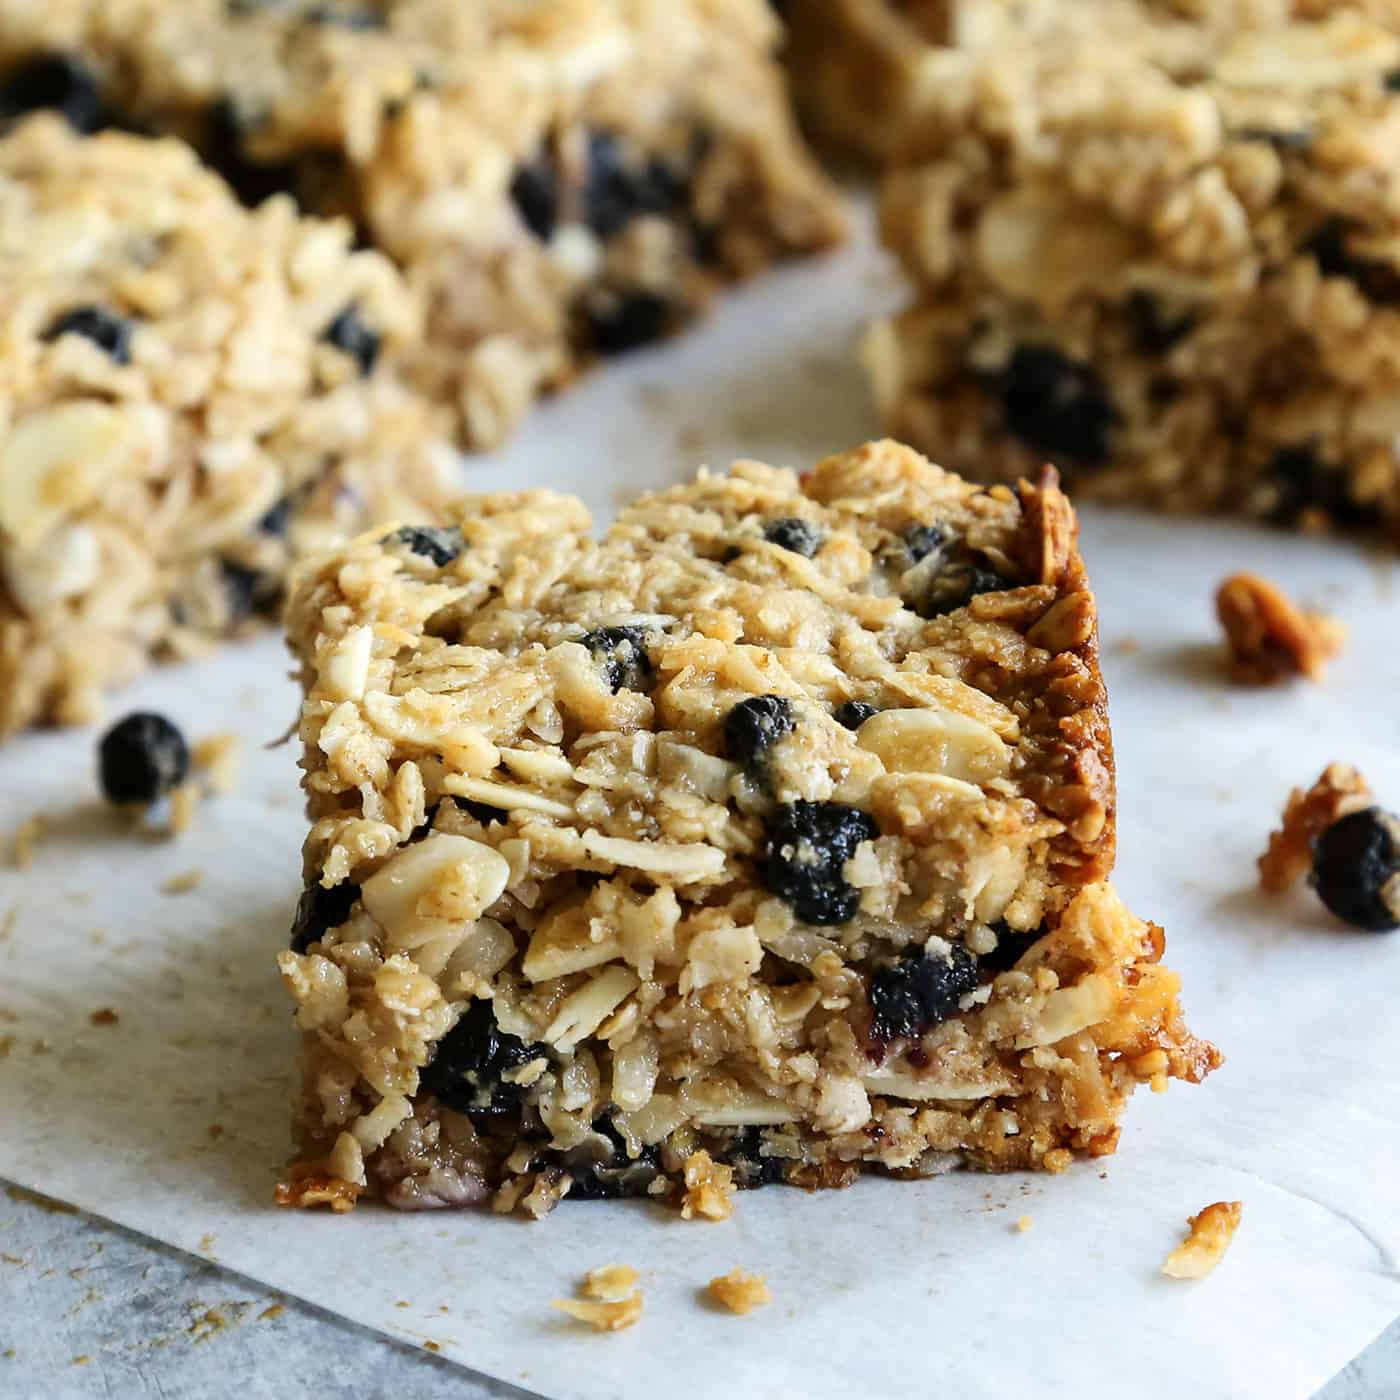 A chewy granola bar with blueberries and almonds